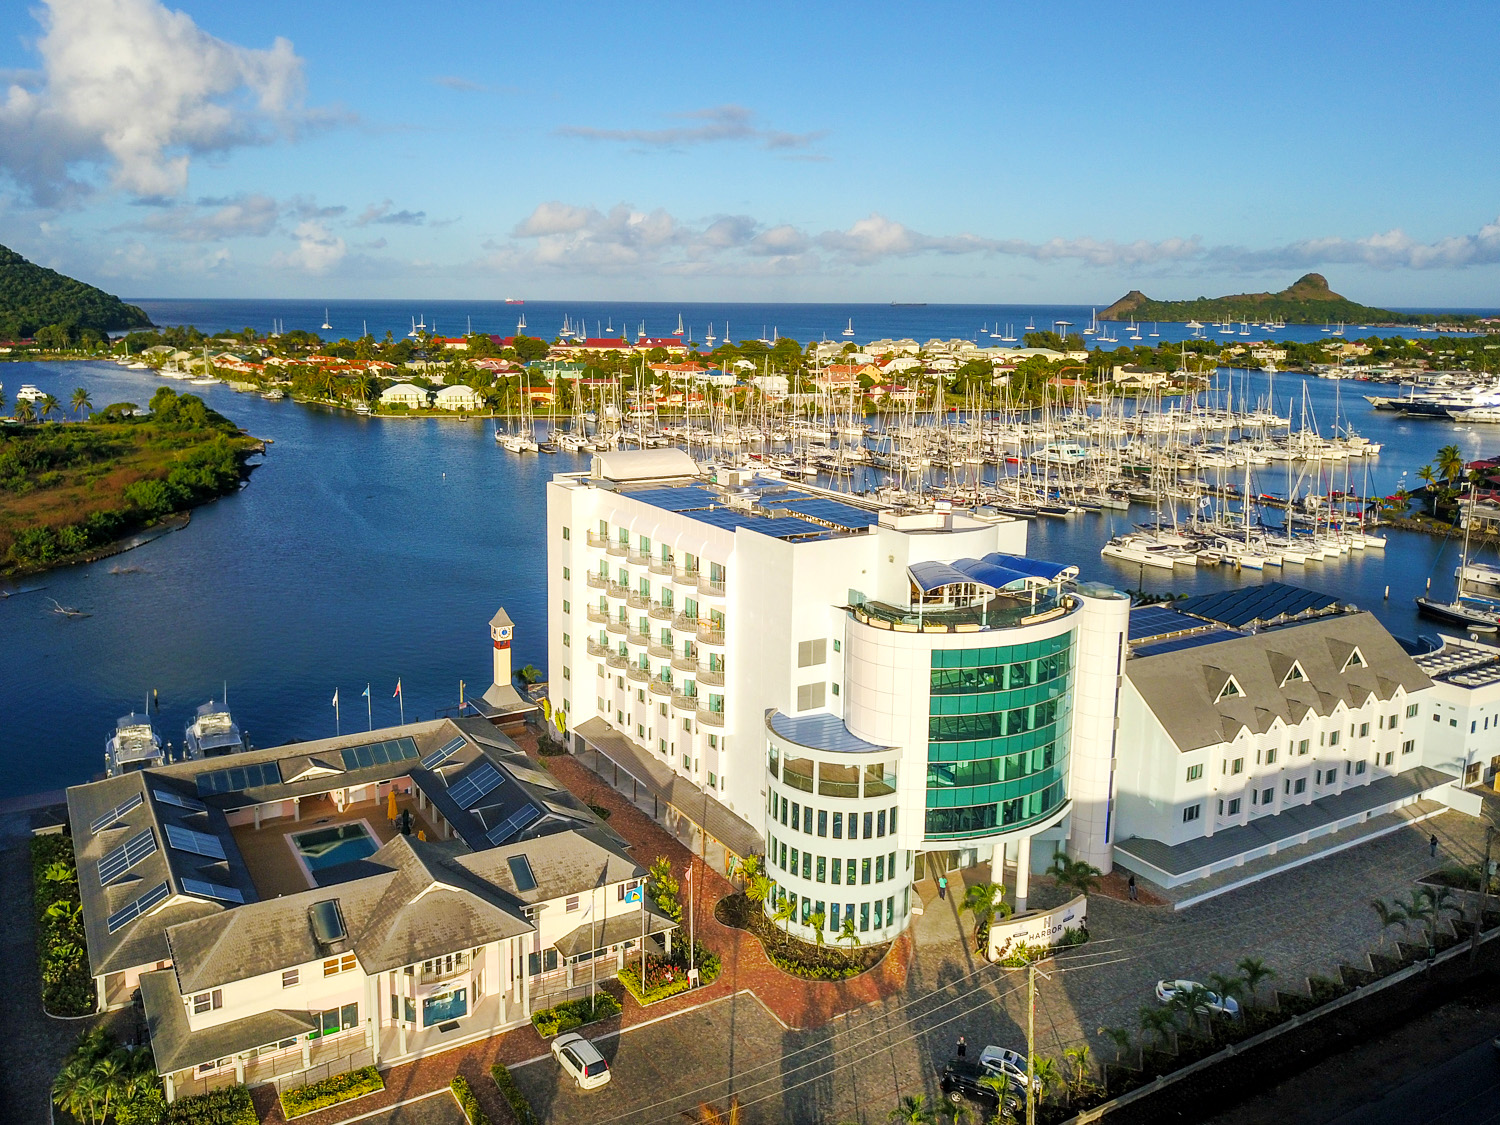 Front facade of the Harbot Club Hotel in St. Lucia overlooking the boats docked at the harbor. MEP designed by 2L Engineering.